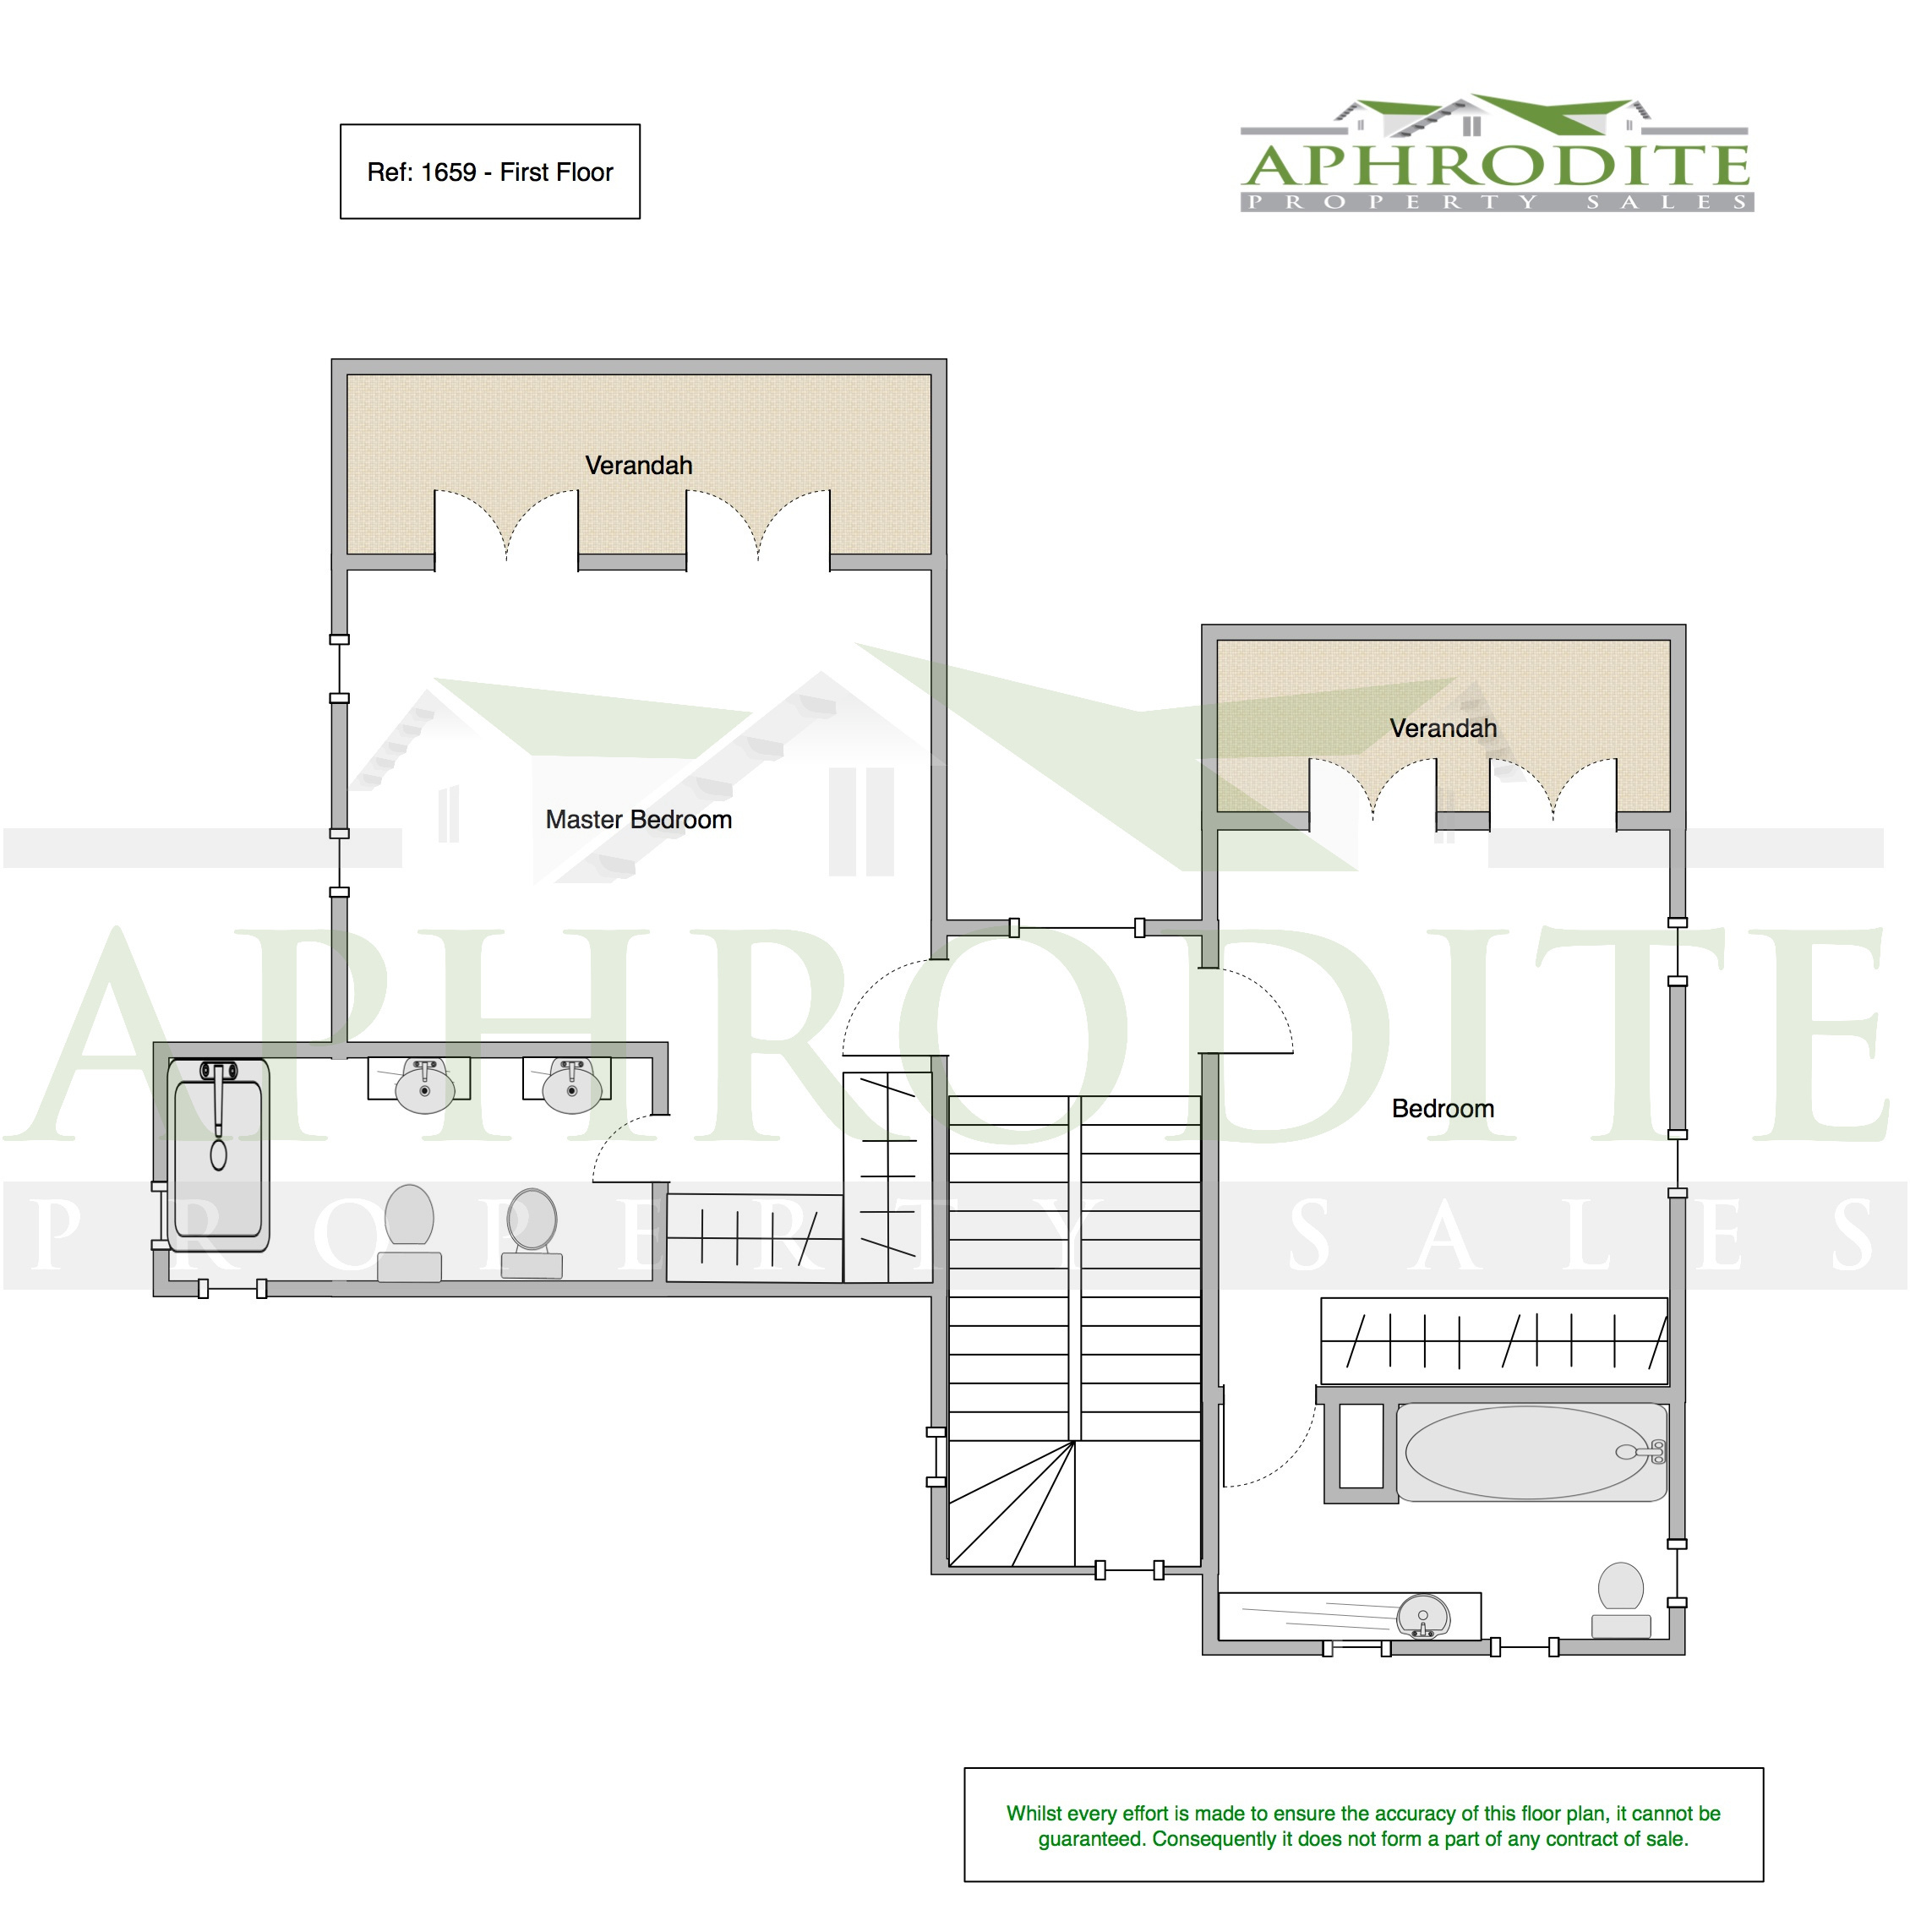 1659 - 3 Bedroom Villa - Aphrodite Hills floorplan 2